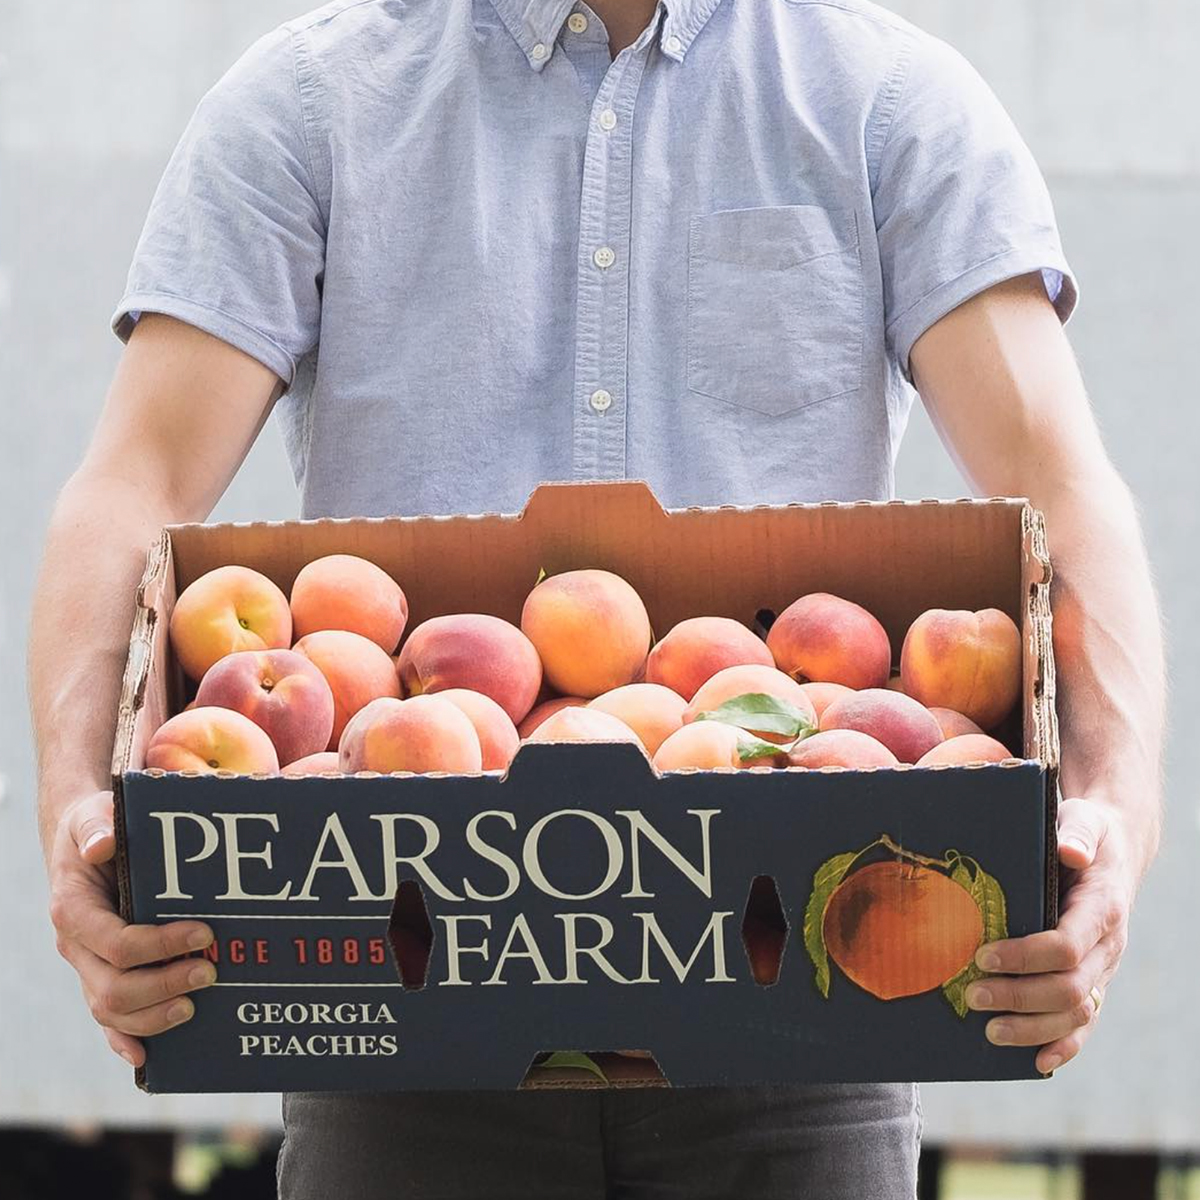 Pearson-Farms-Peaches-Product-V2-1.jpg